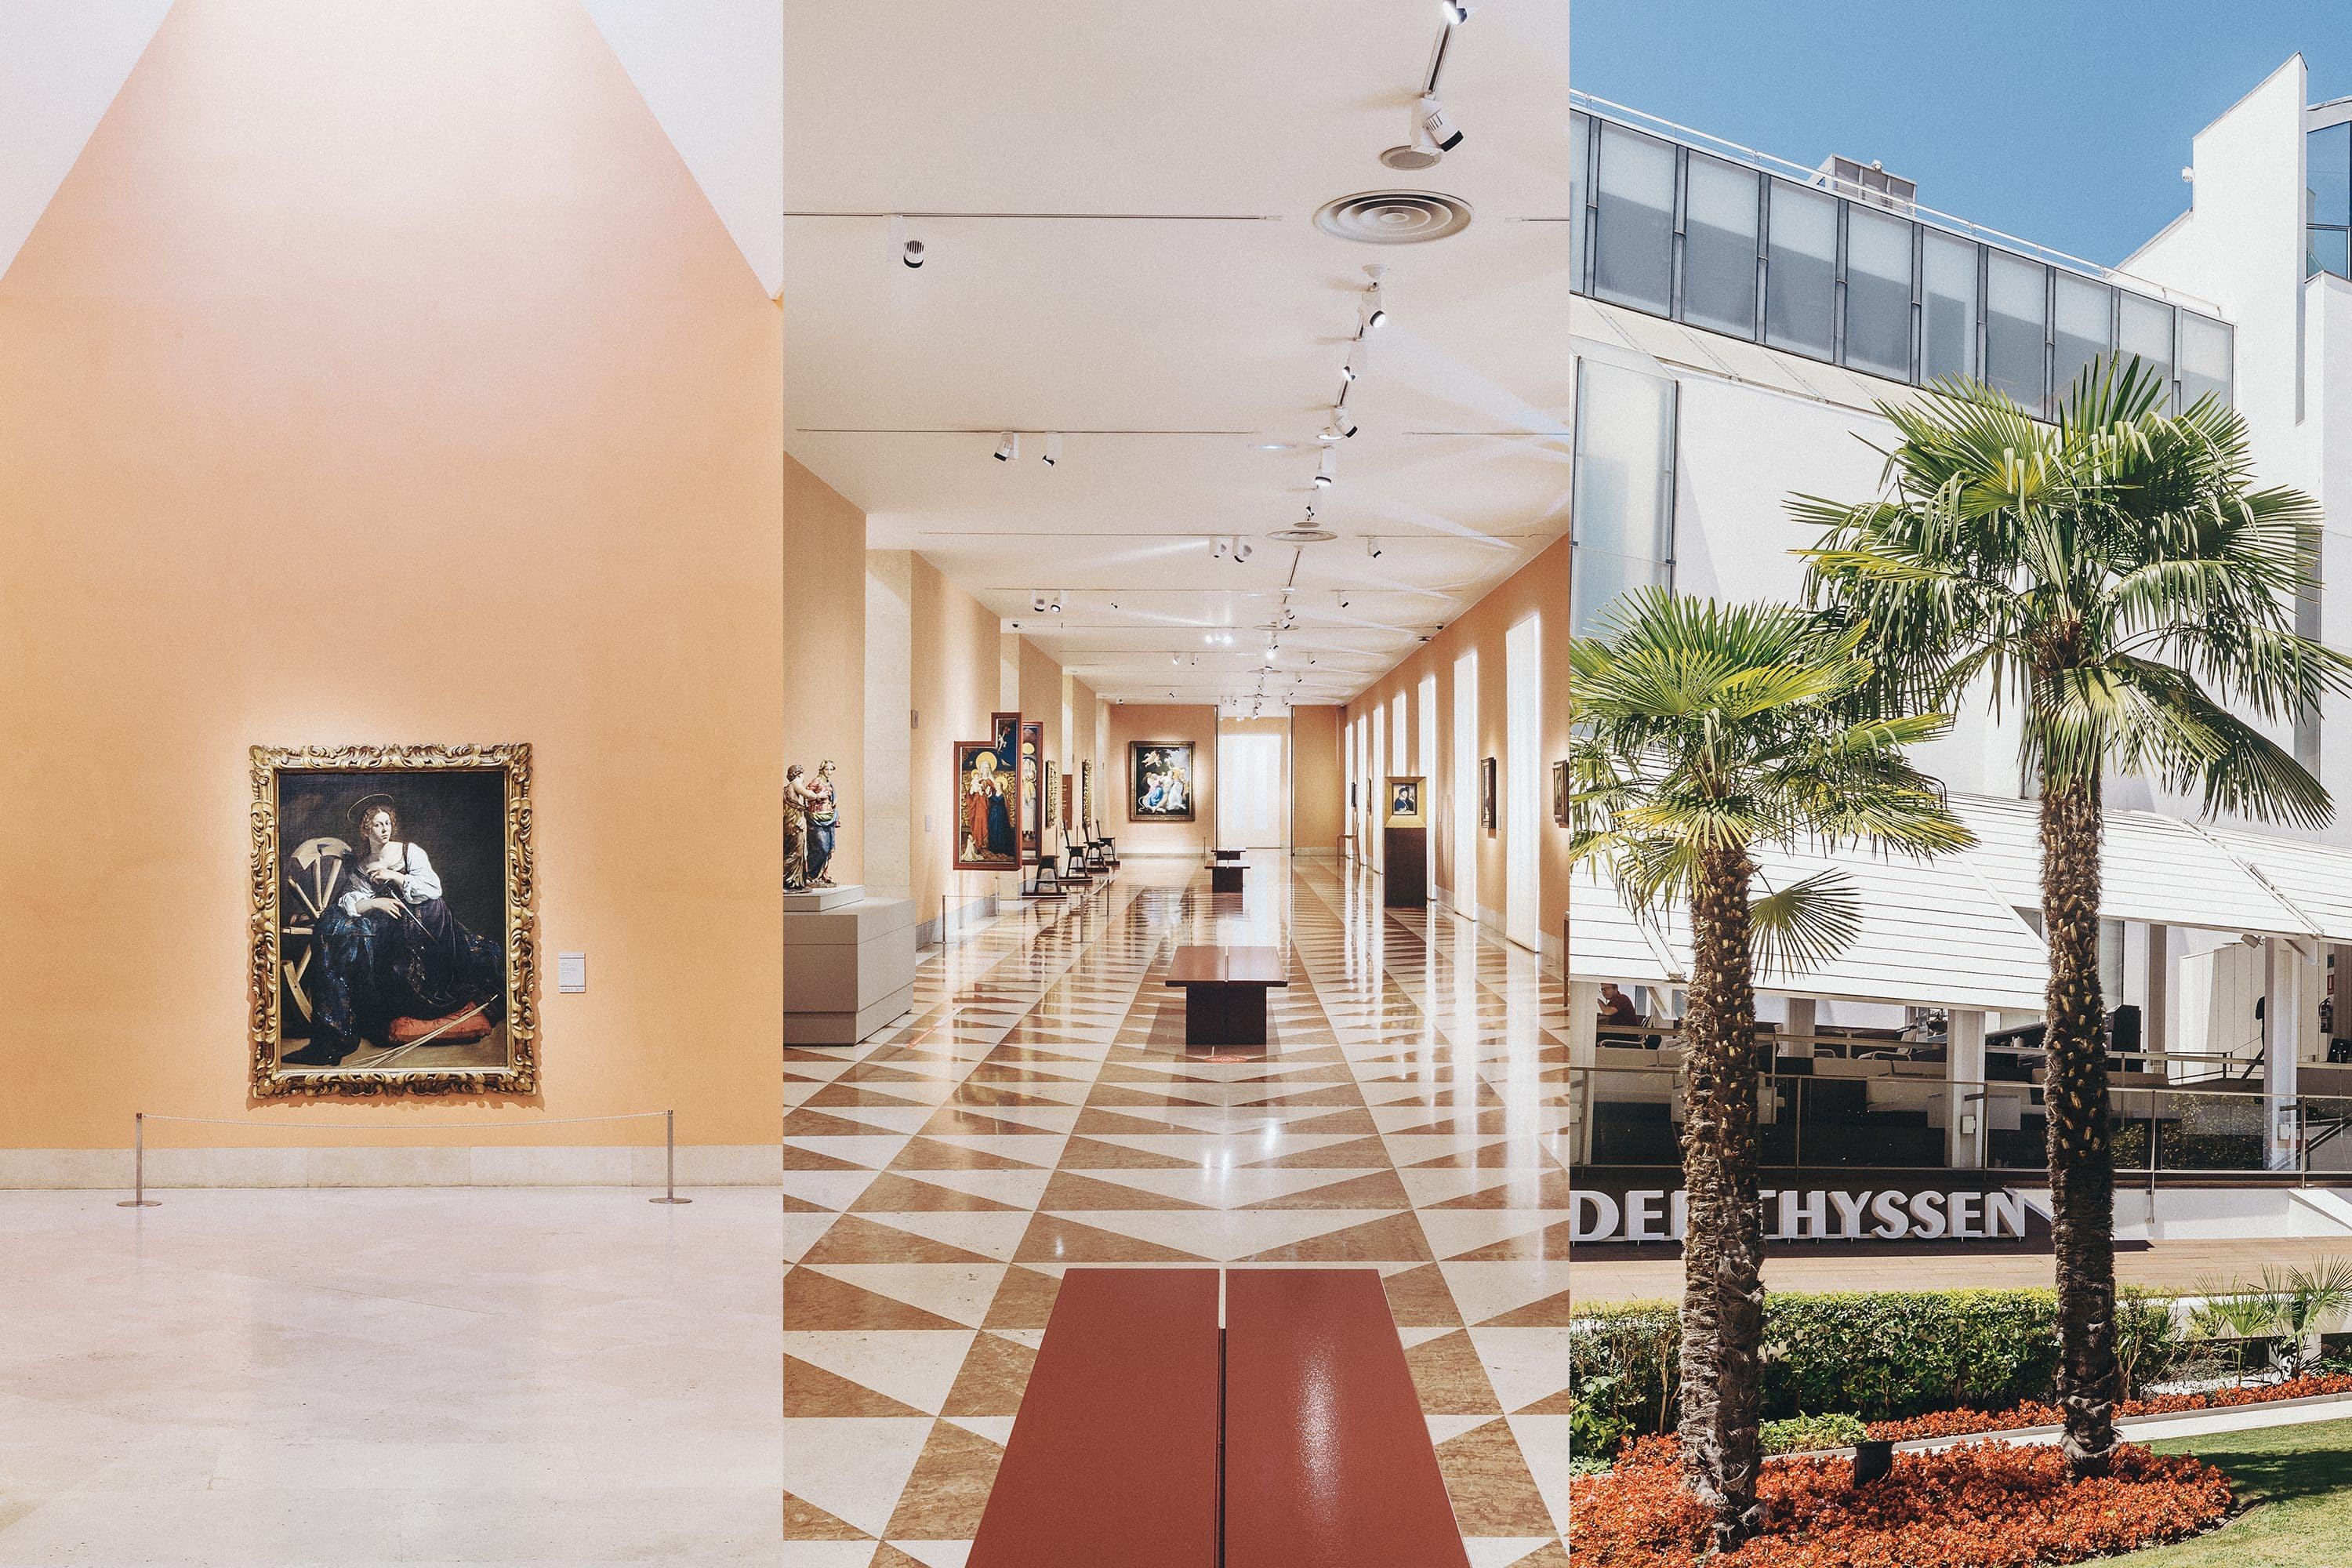 Collage of images of inside the galleries and exterior of the Museo Nacional Thyssen Bornemisza